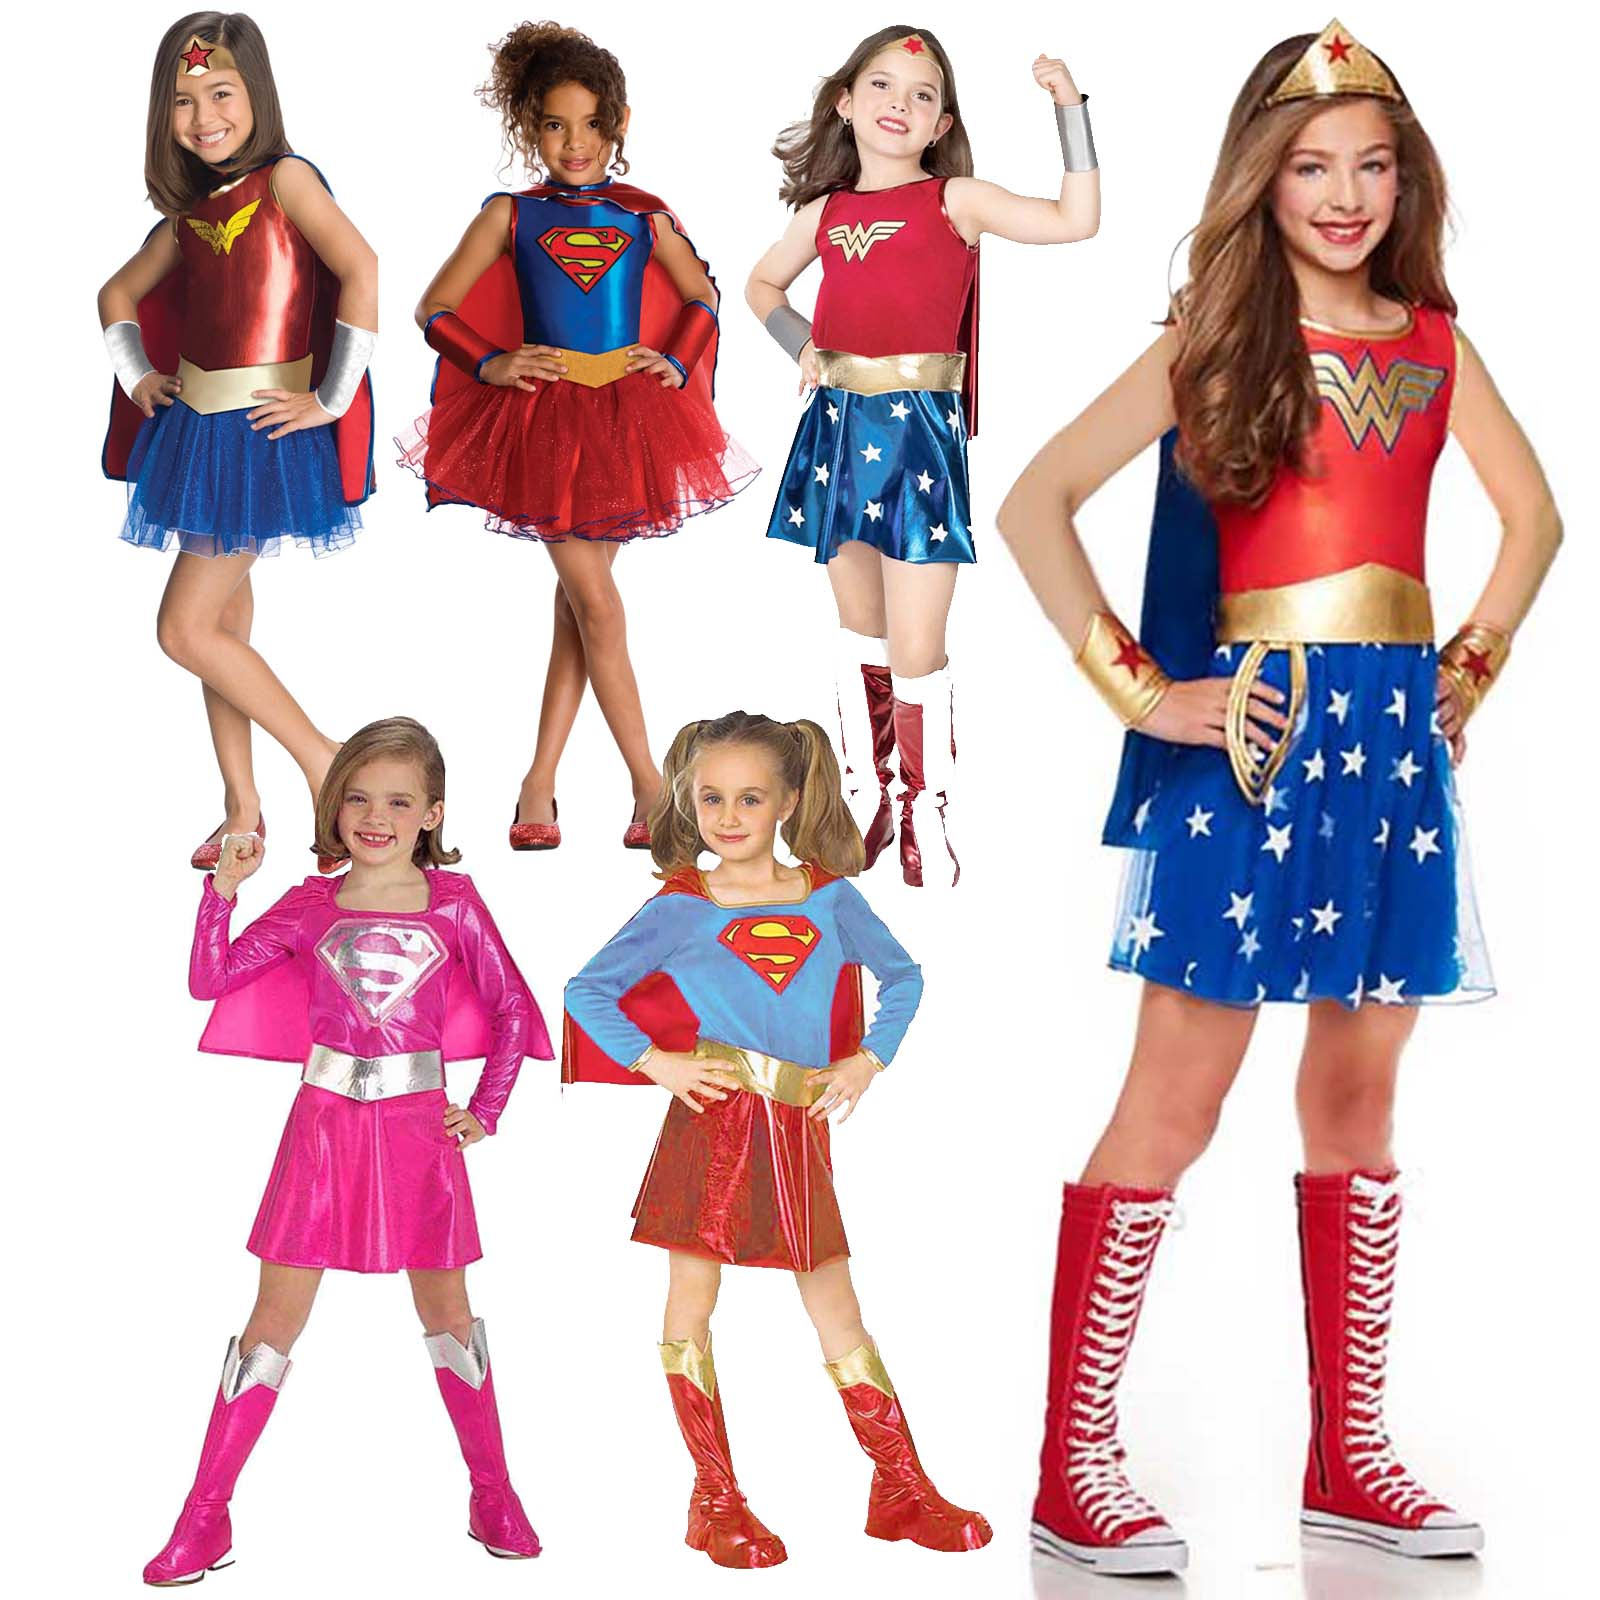 Dawn Of Justice Child Wonder Women Costume Supergirl Batgirl Robin Little Girls Superhero Fancy Dress Halloween Carnival Party